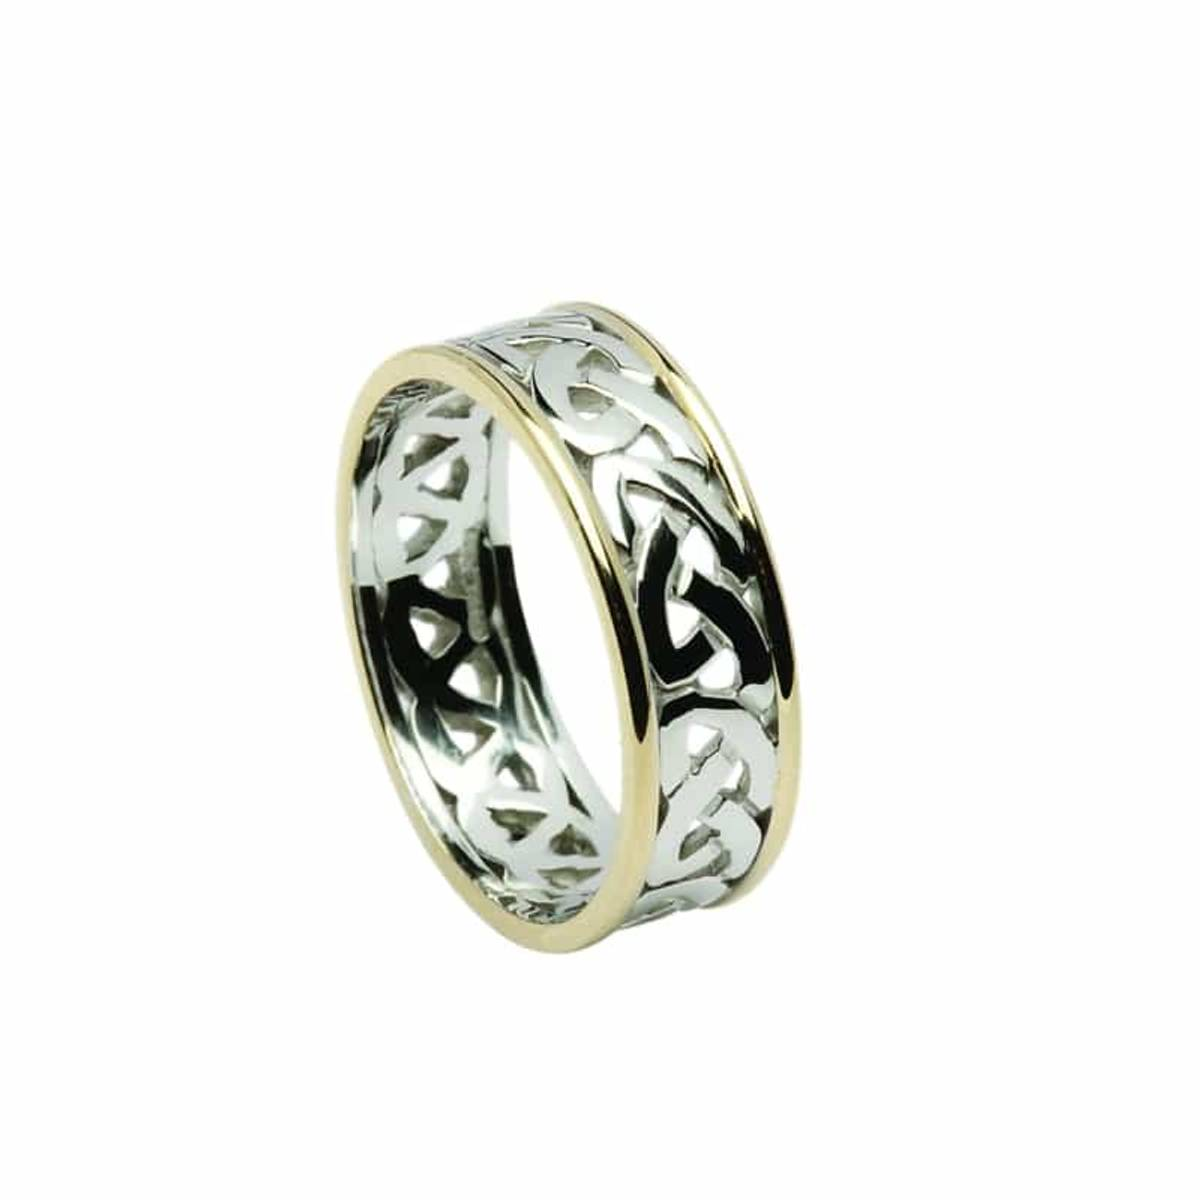 18 ct open knot white gold gents wedding band with yellow gold rims